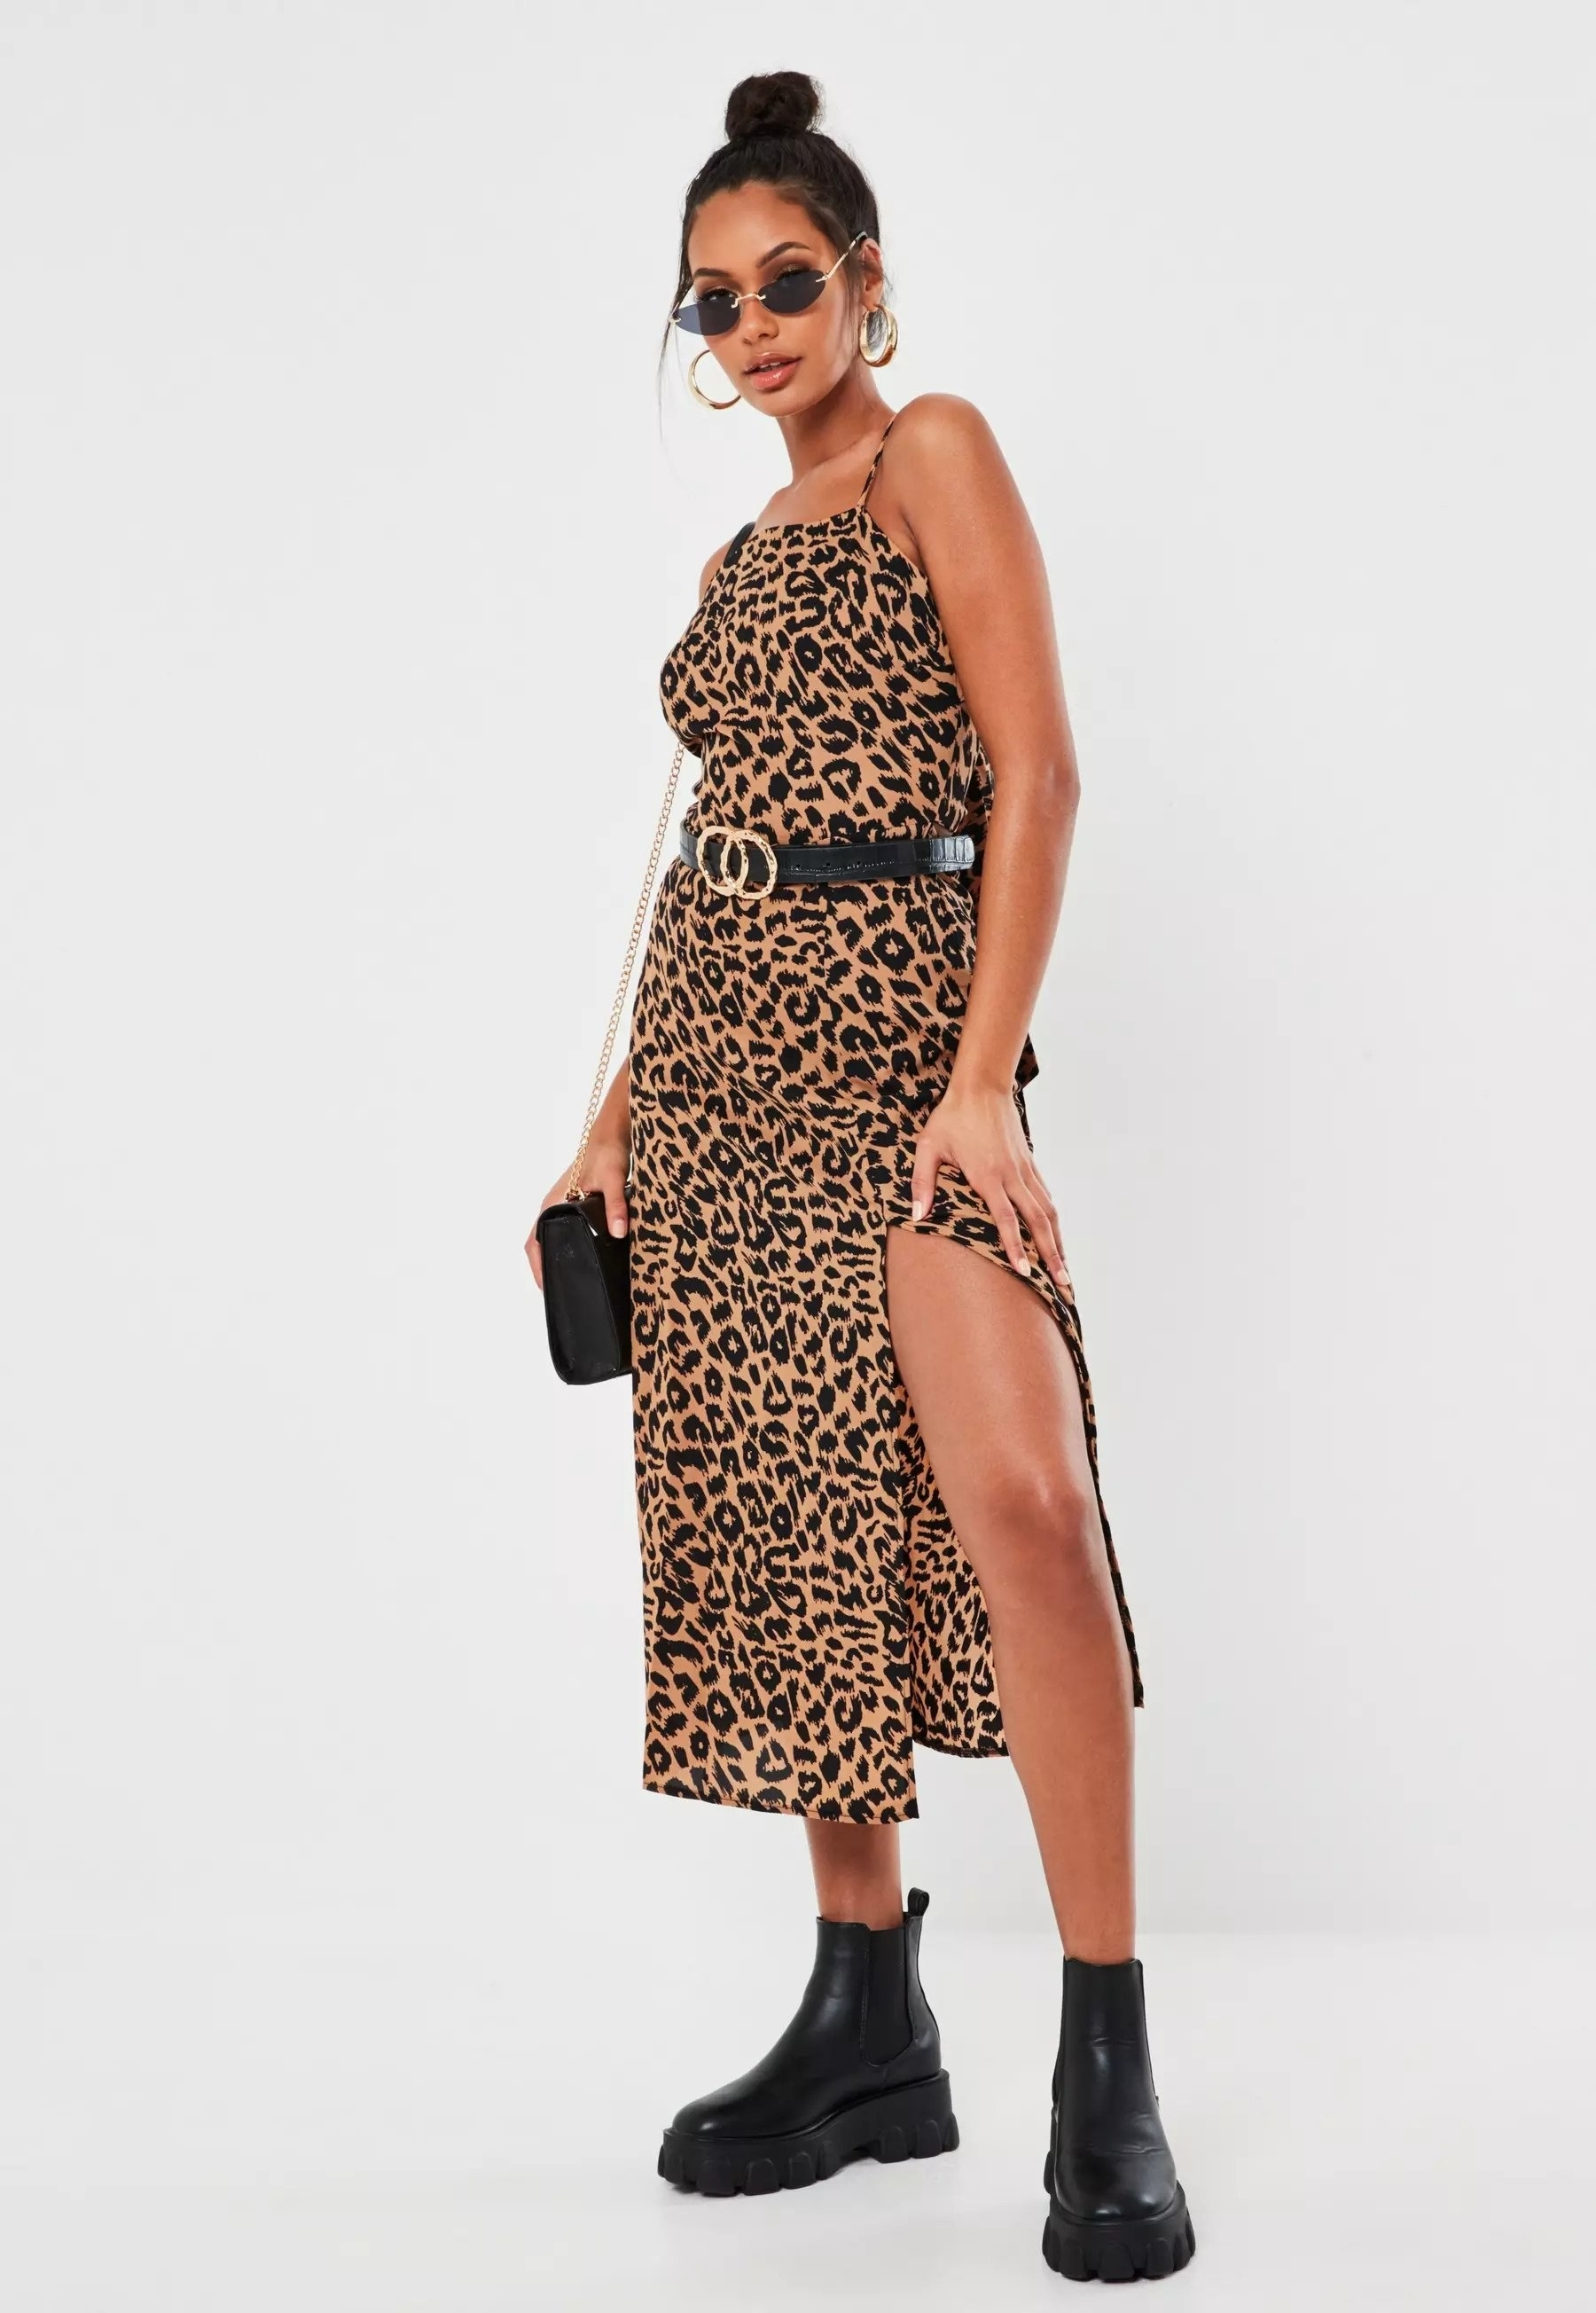 Model wearing leopard print dress